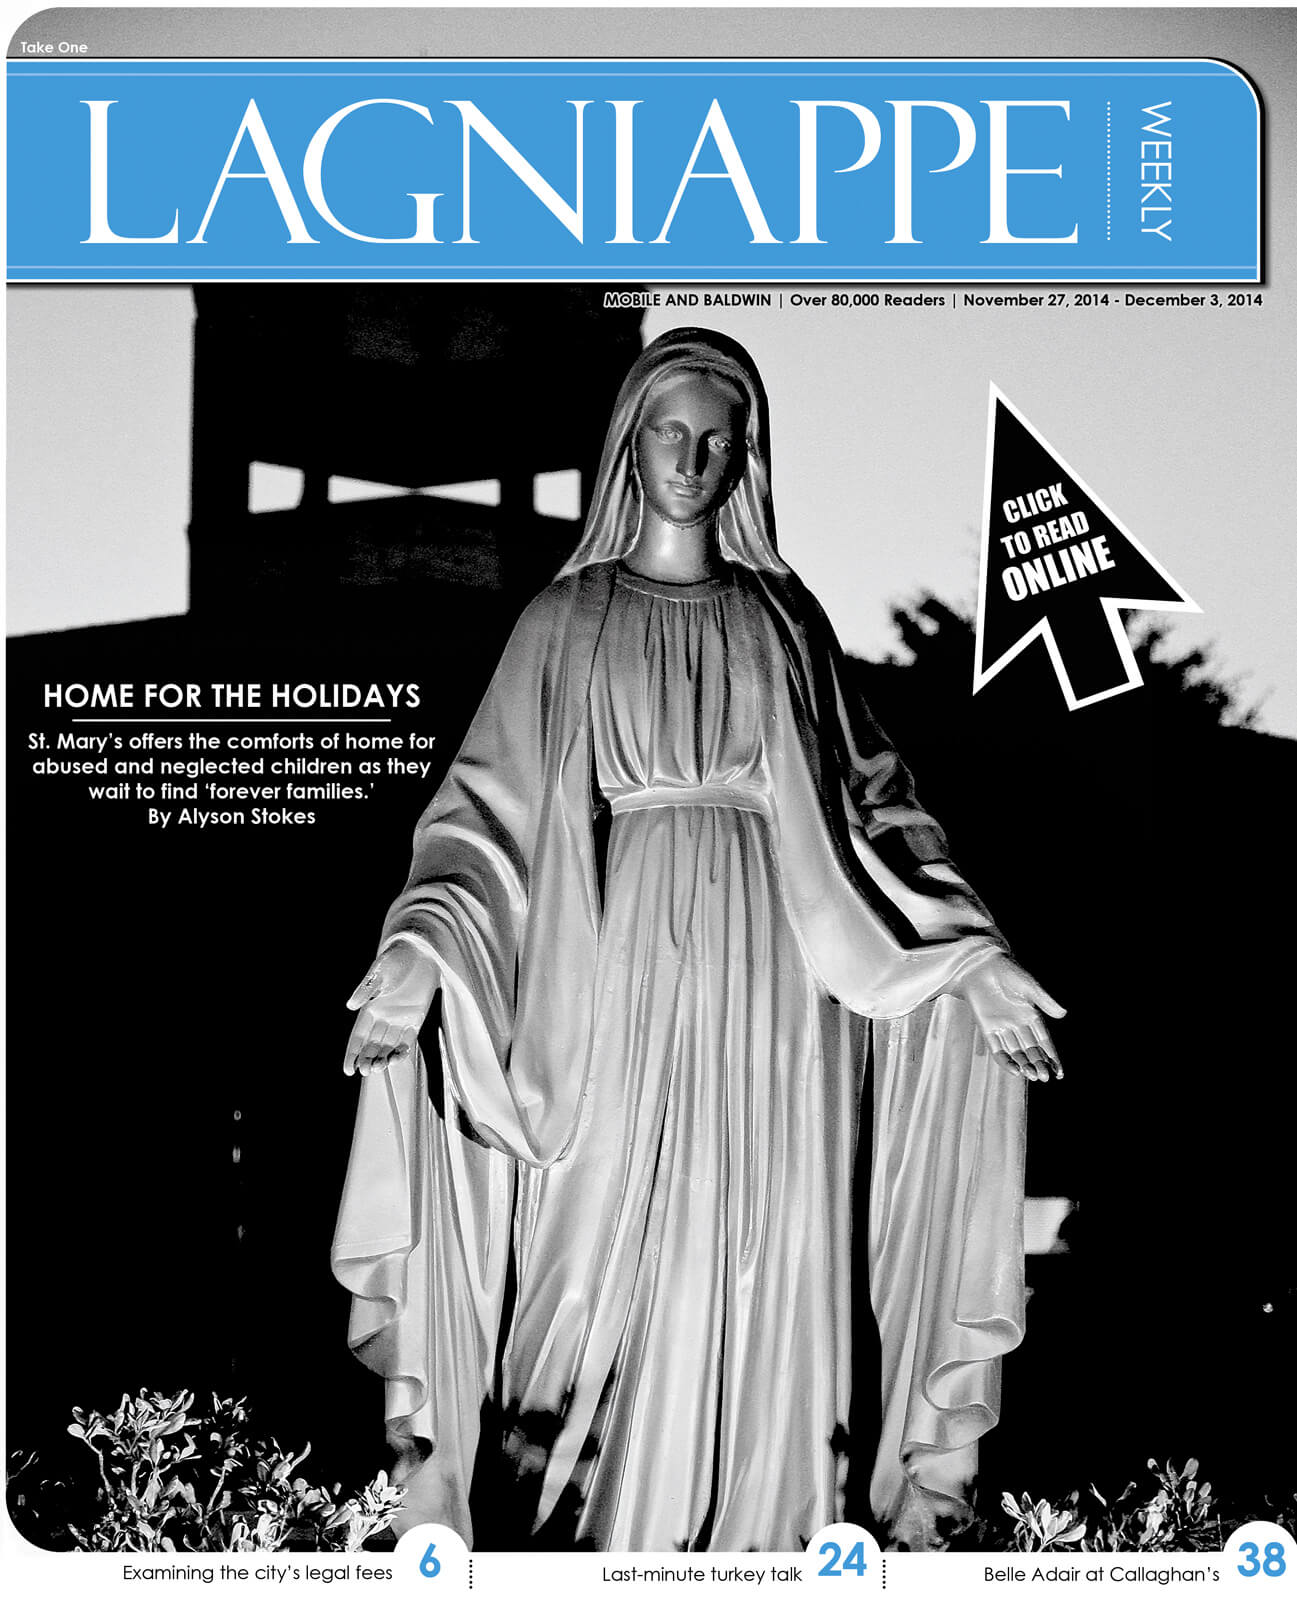 Lagniappe Nov. 27-Dec. 3, 2014